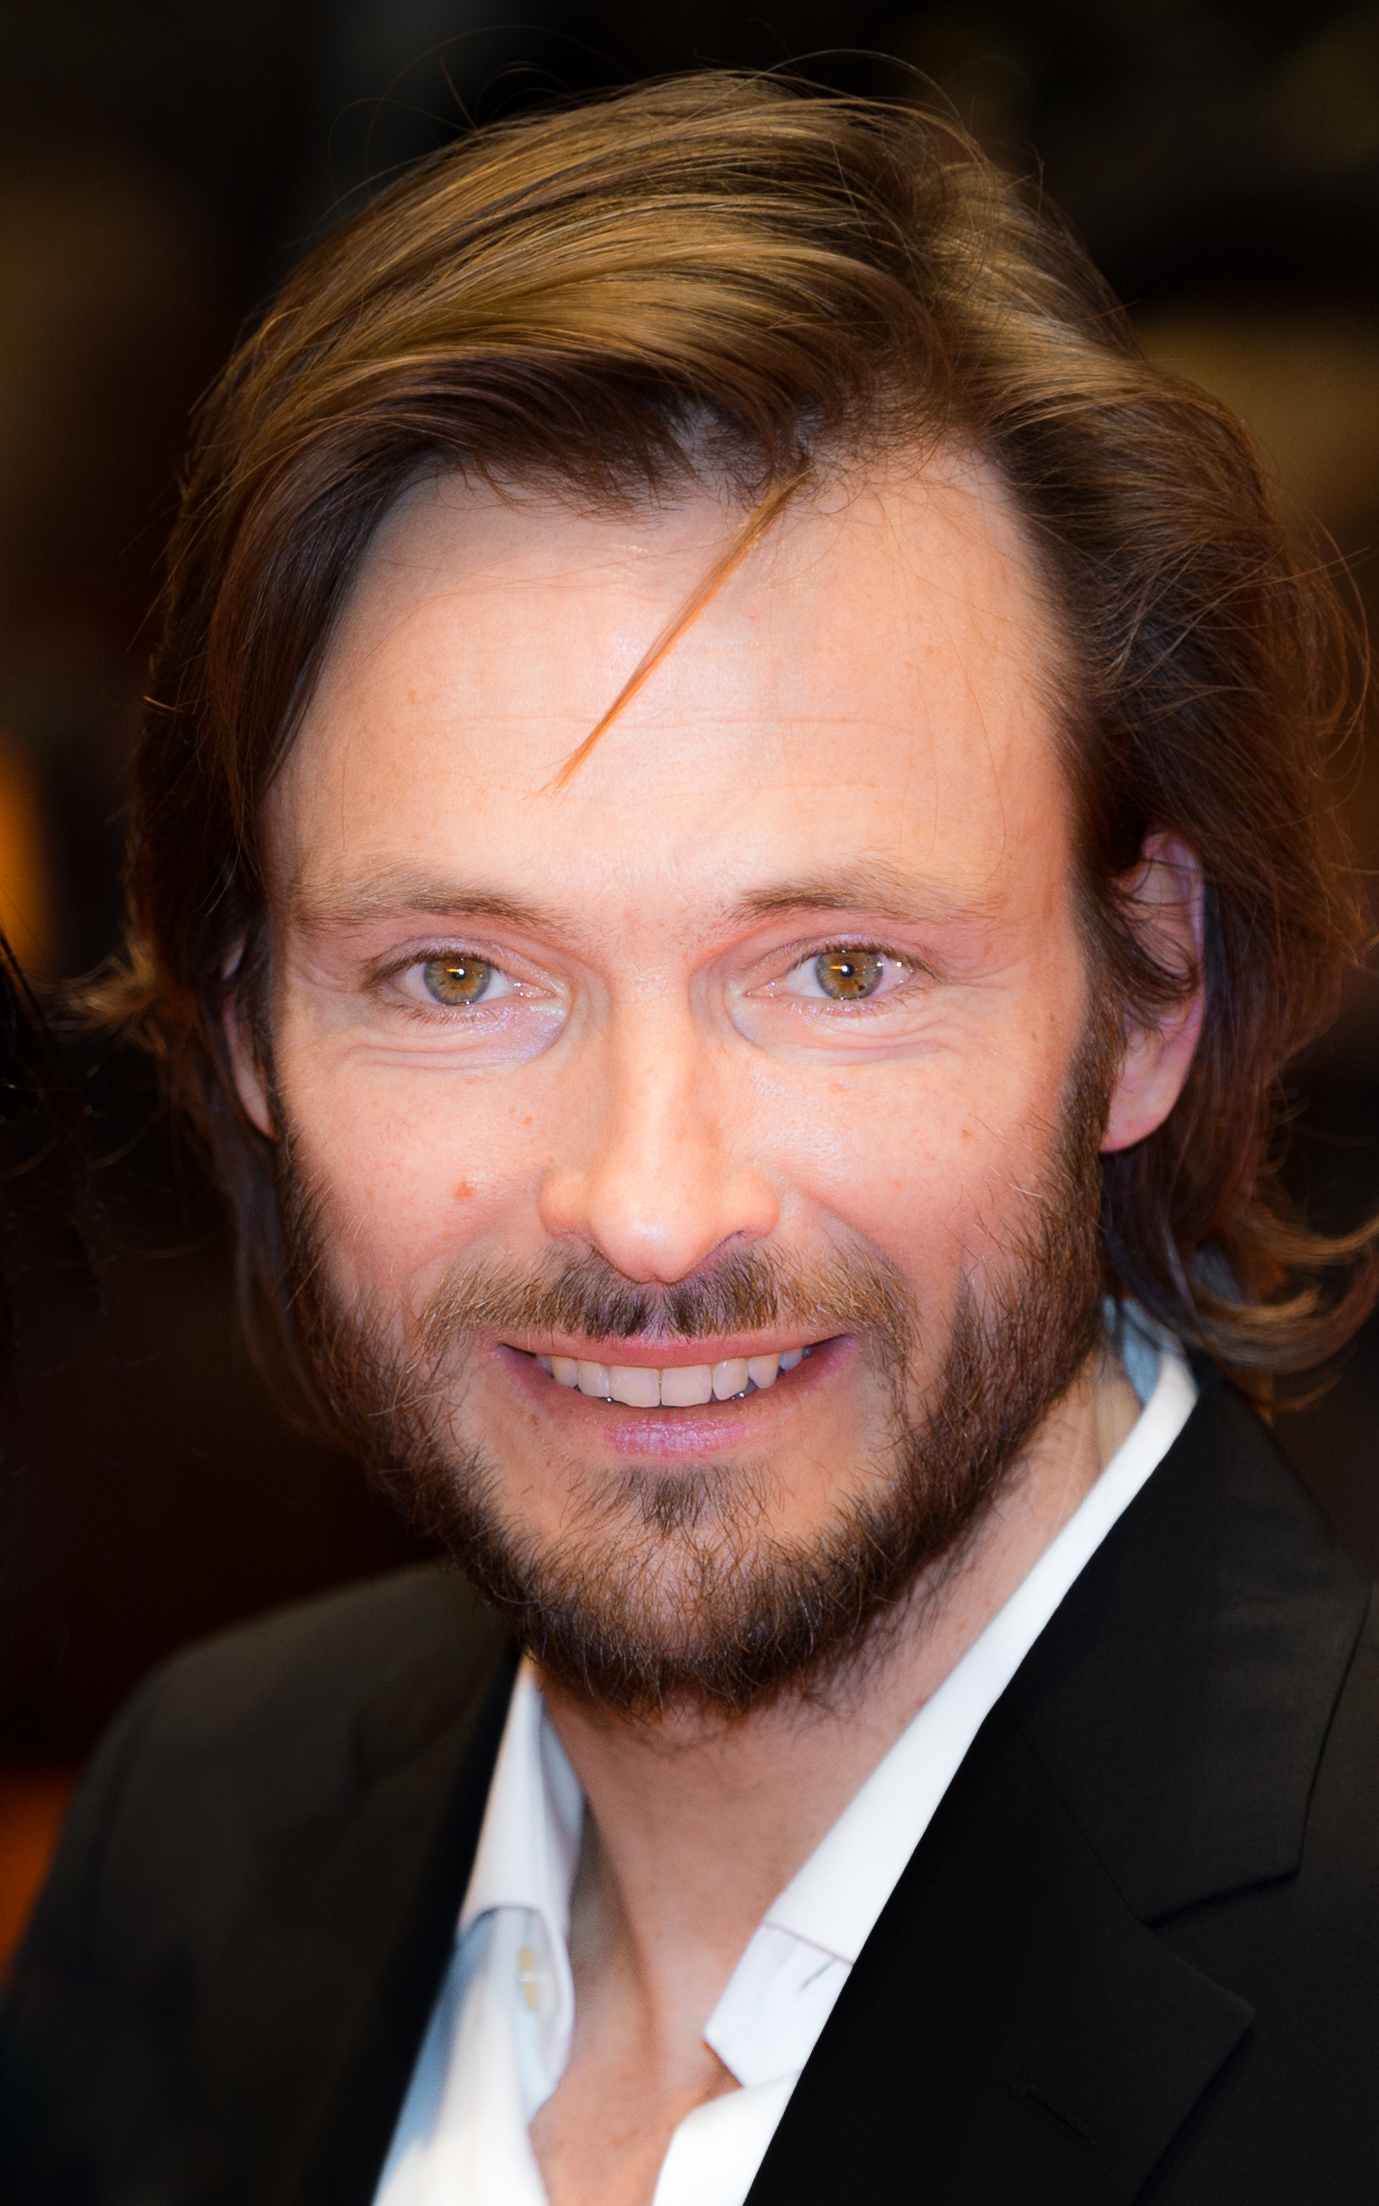 The 49-year old son of father (?) and mother(?) Andreas Pietschmann in 2018 photo. Andreas Pietschmann earned a  million dollar salary - leaving the net worth at  million in 2018